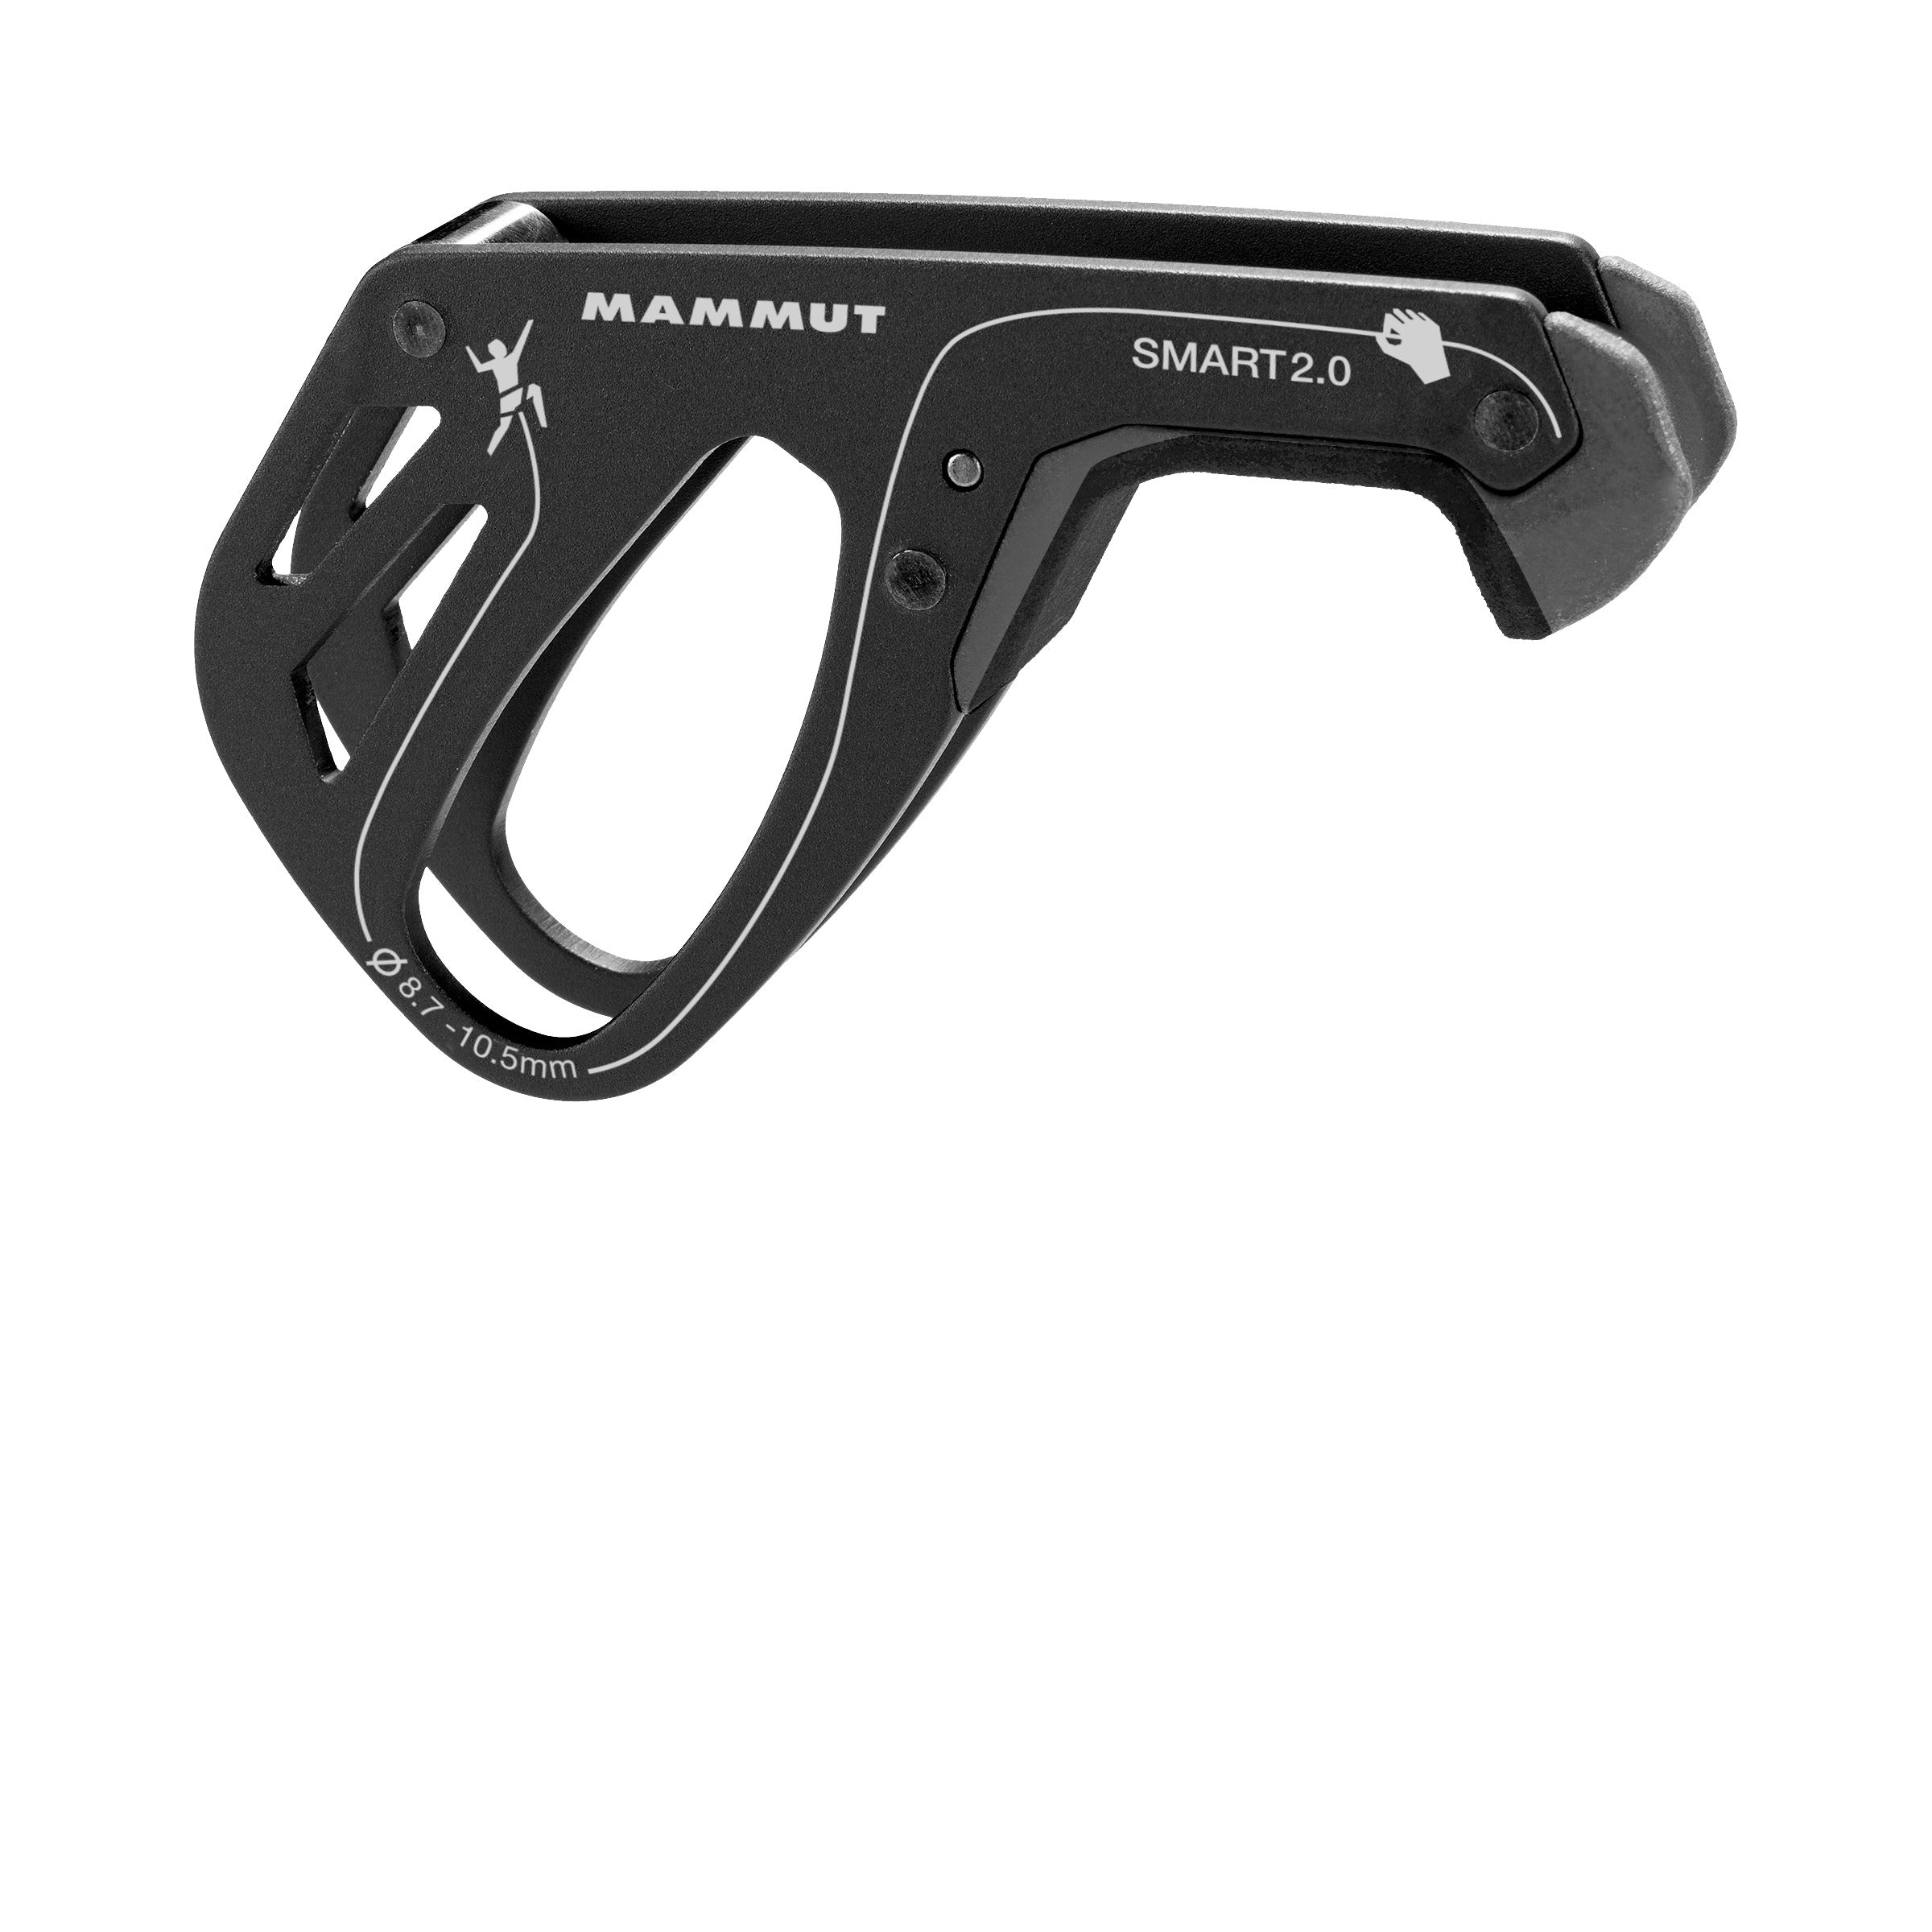 MAMMUT Smart 2.0 Assisted-Braking Belay Device